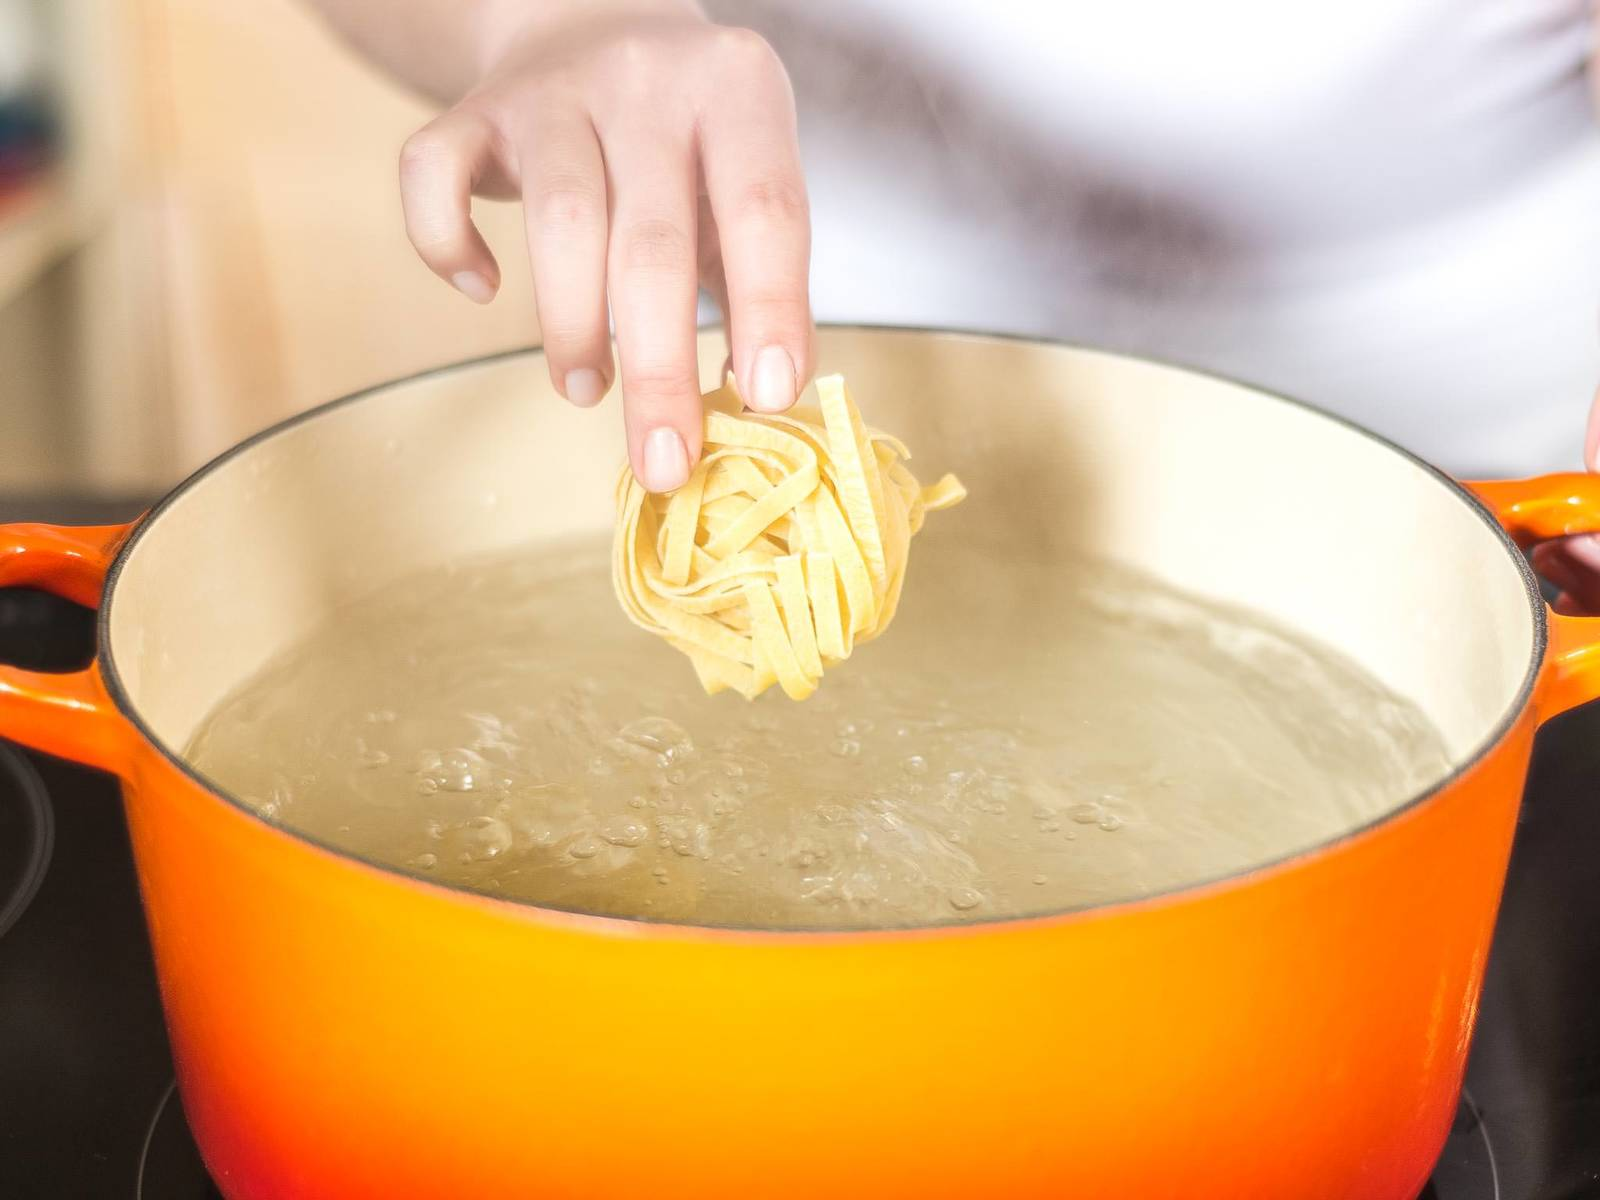 Cook pasta for approx. 8 – 10 min. in plenty of salted boiling water, according to package instructions. When draining, save some pasta water and set aside.